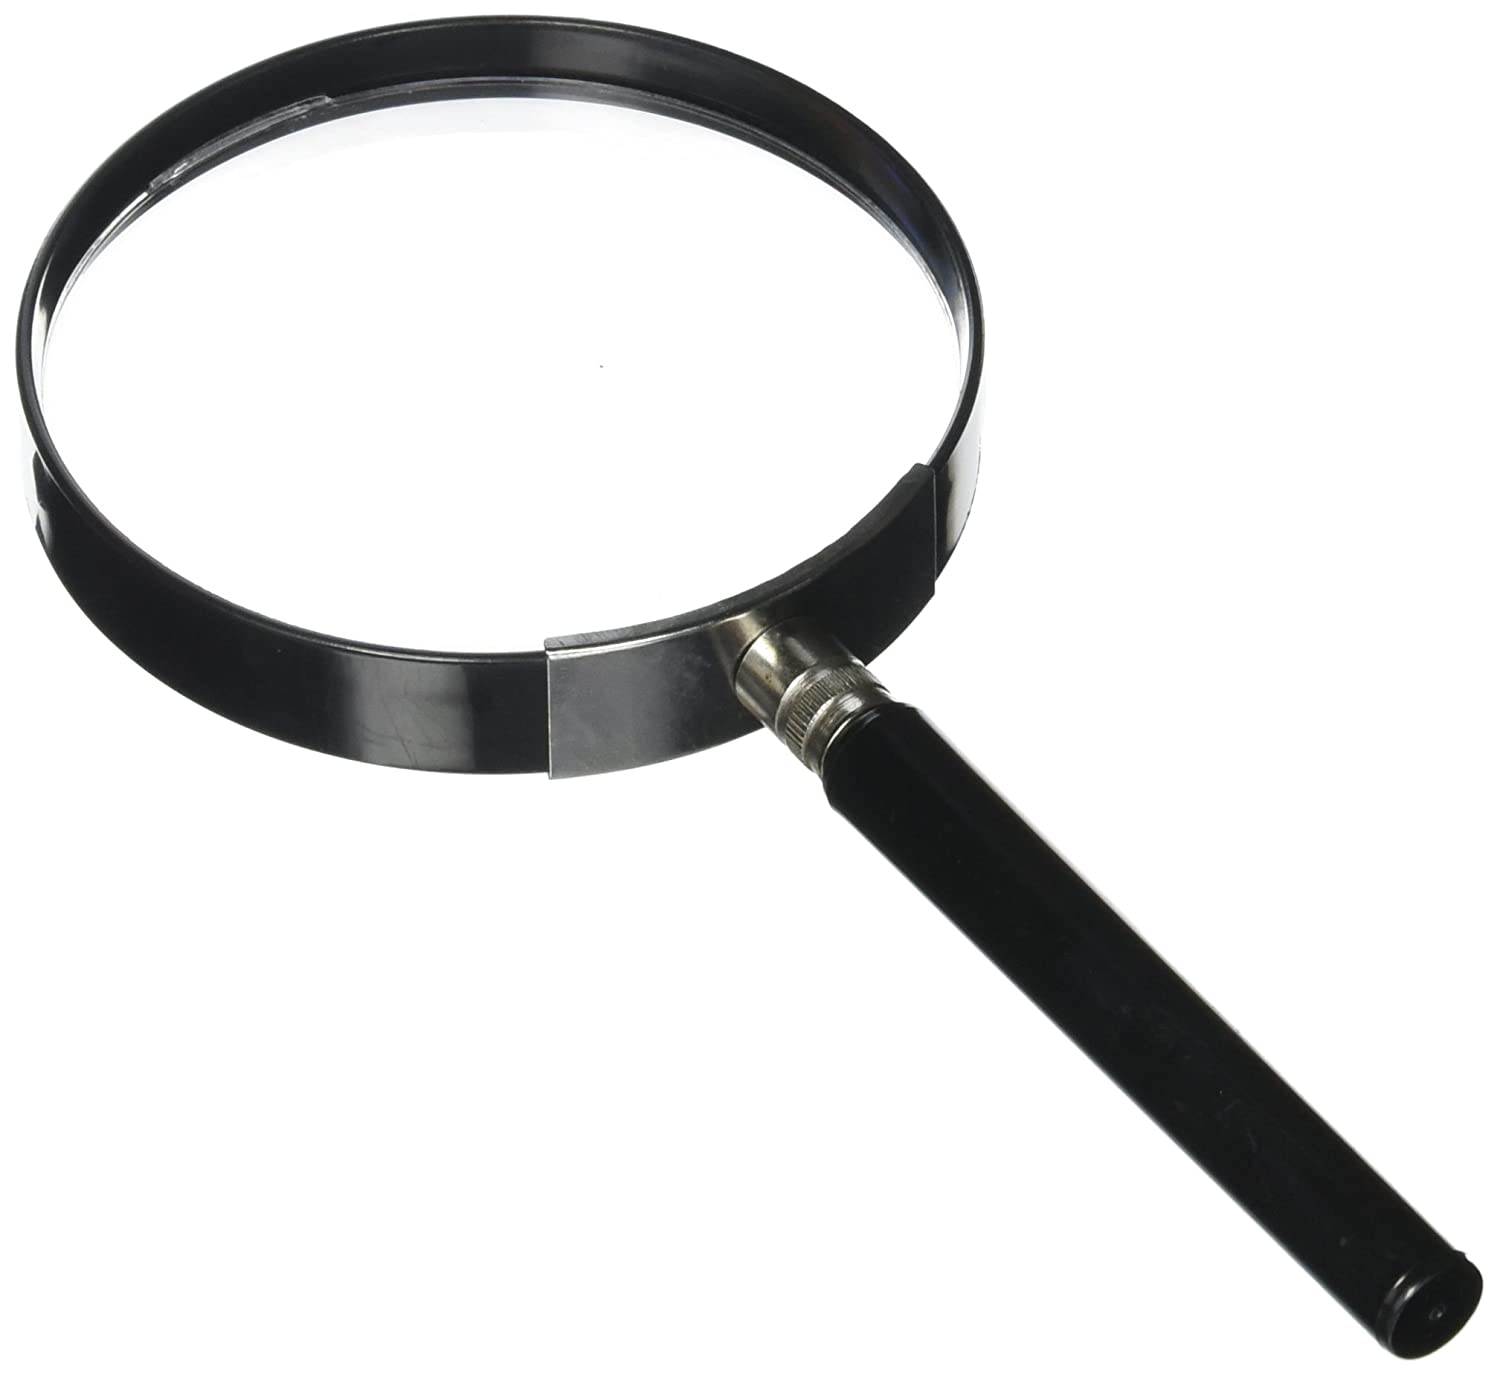 Hey Large and Durable Plastic Lens Magnifier for Toddler Kids Jumbo Magnifying Glass with 3X Magnification Play